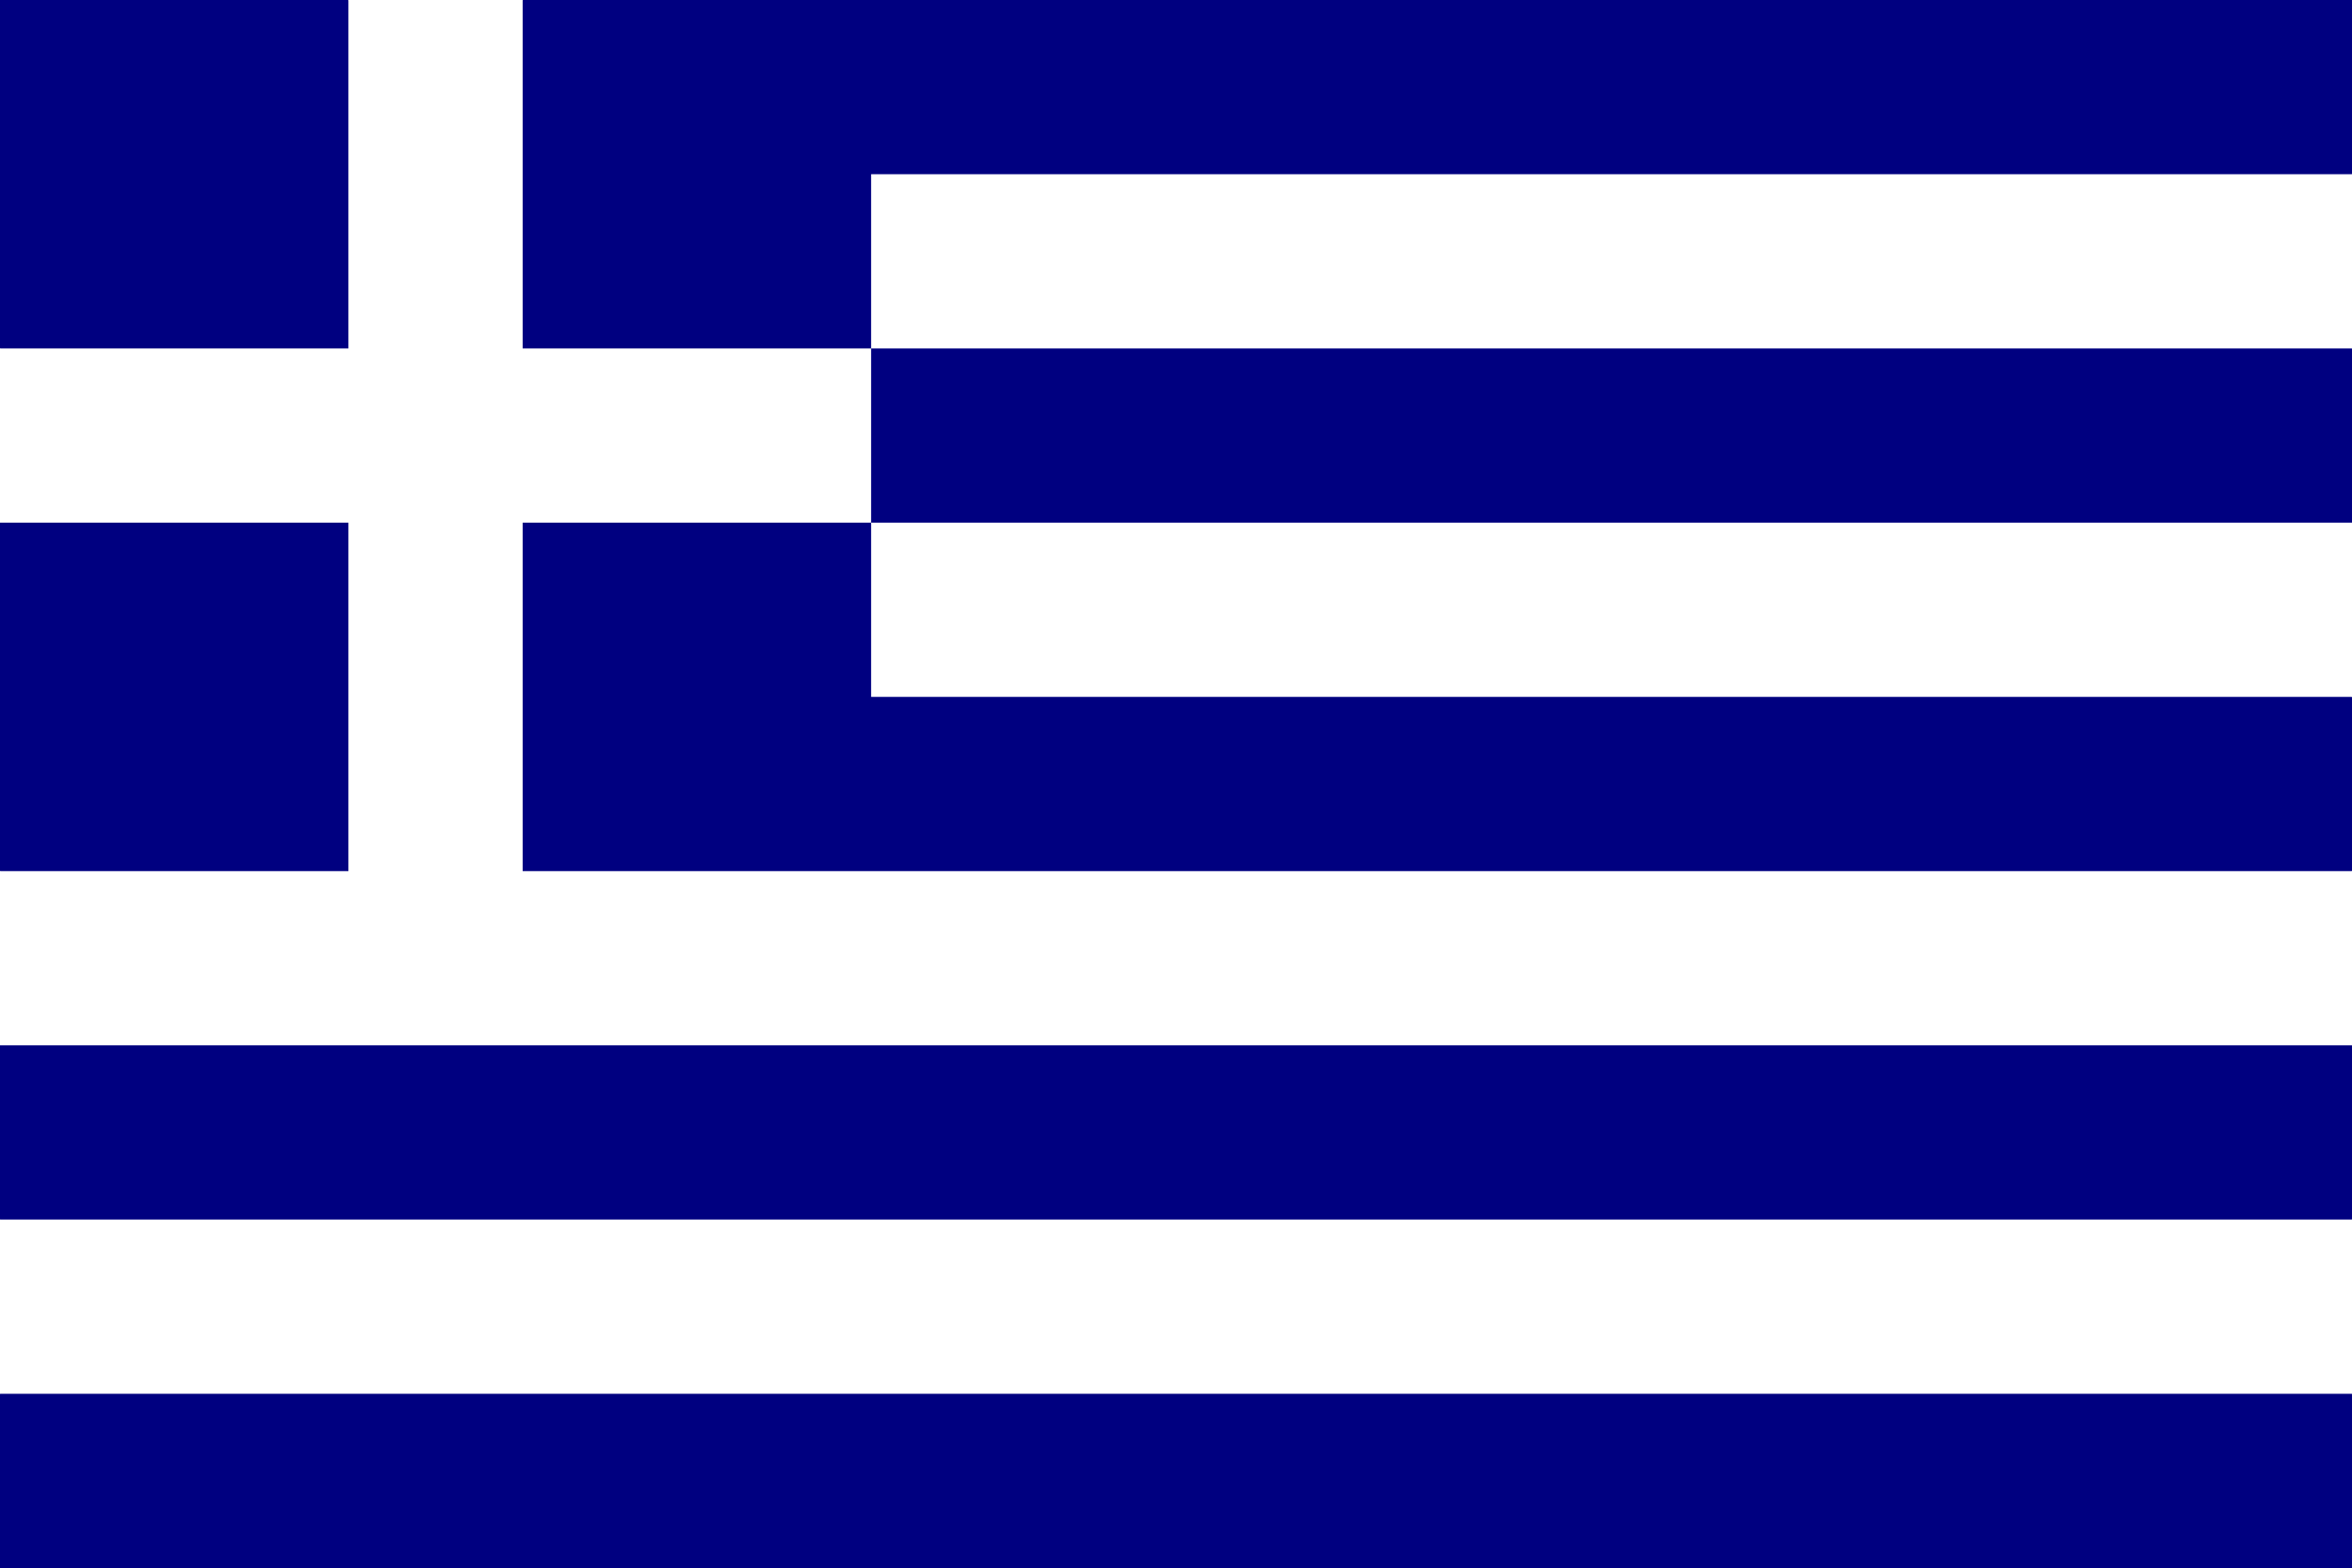 File:Flag of Greece.svg Wikipedia